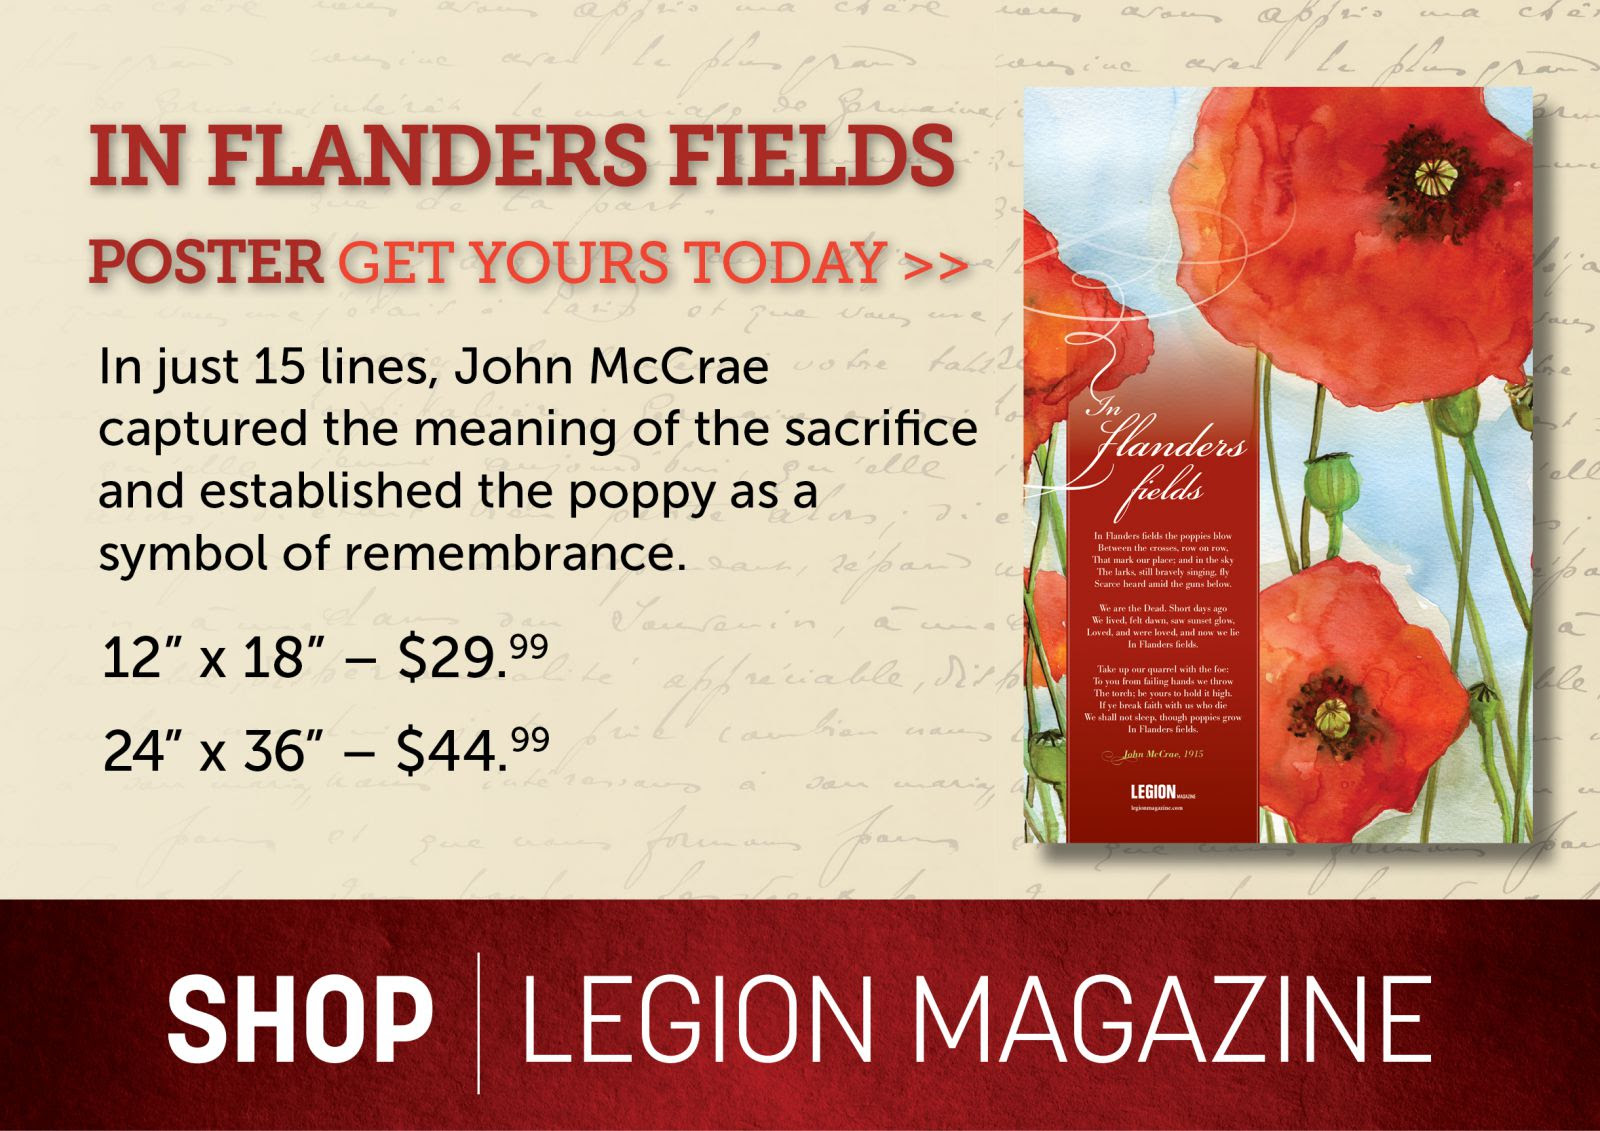 In Flanders Fields - Get yours today!